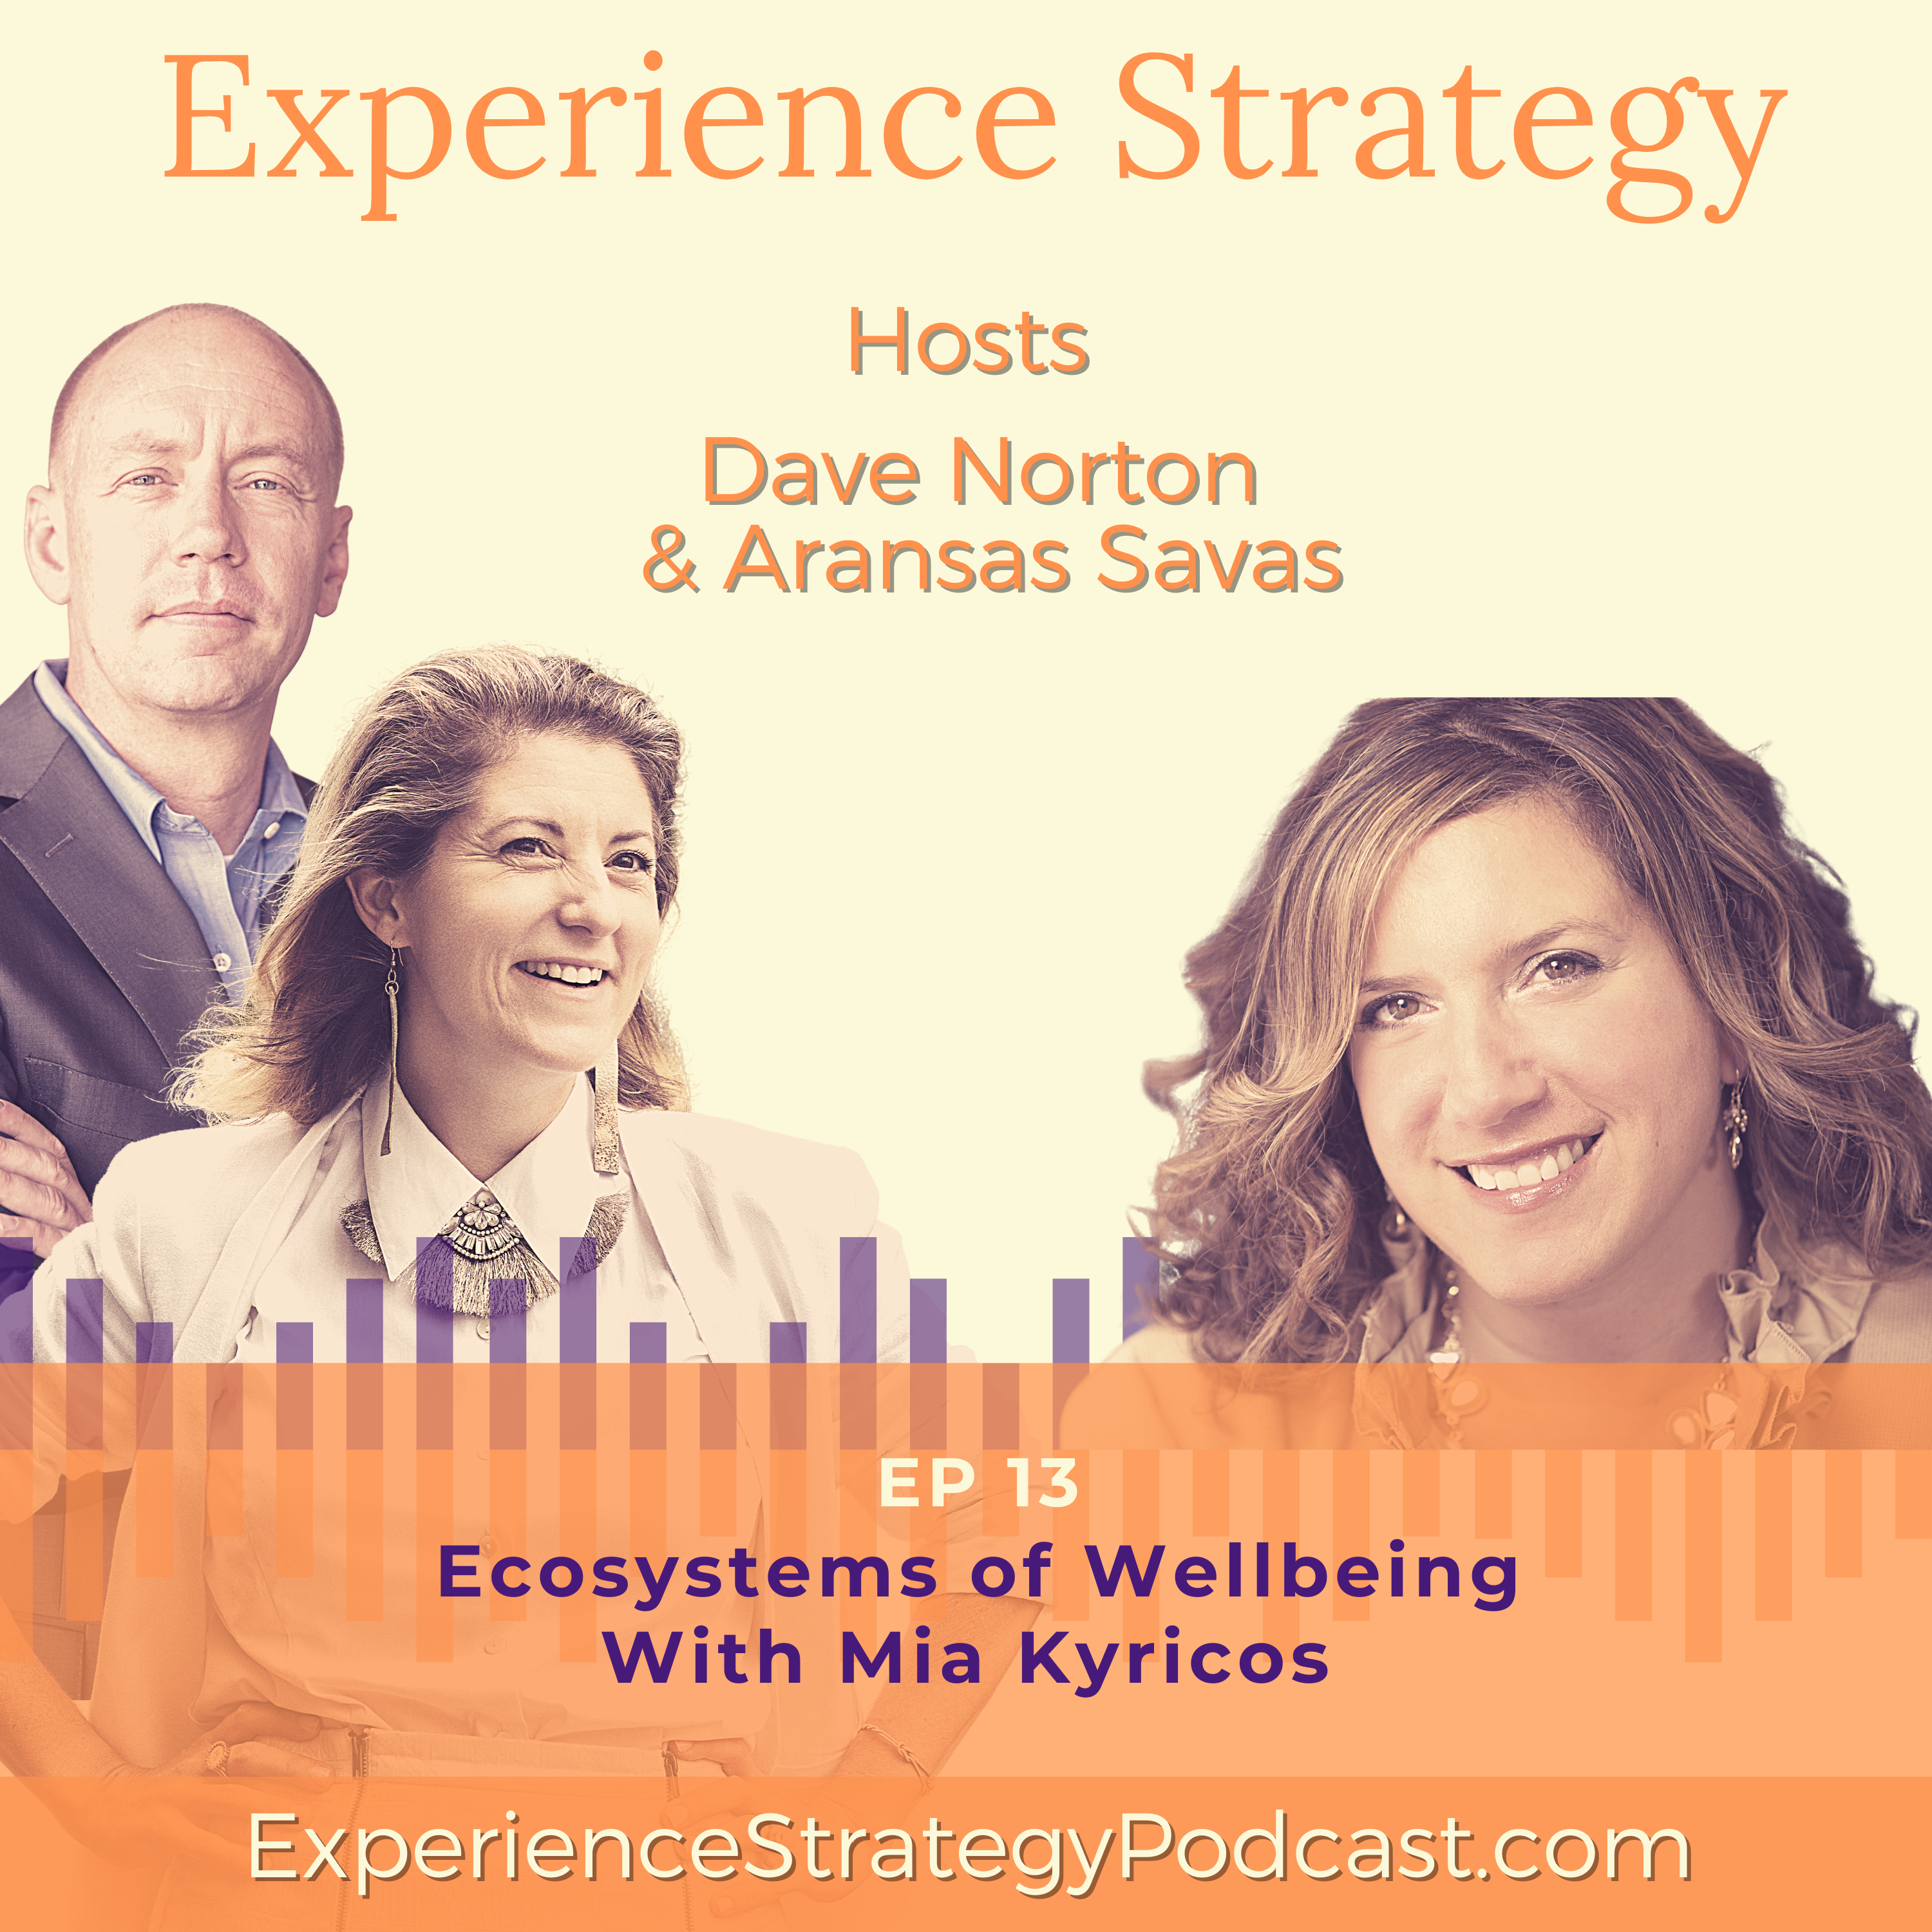 Ecosystems of Wellbeing